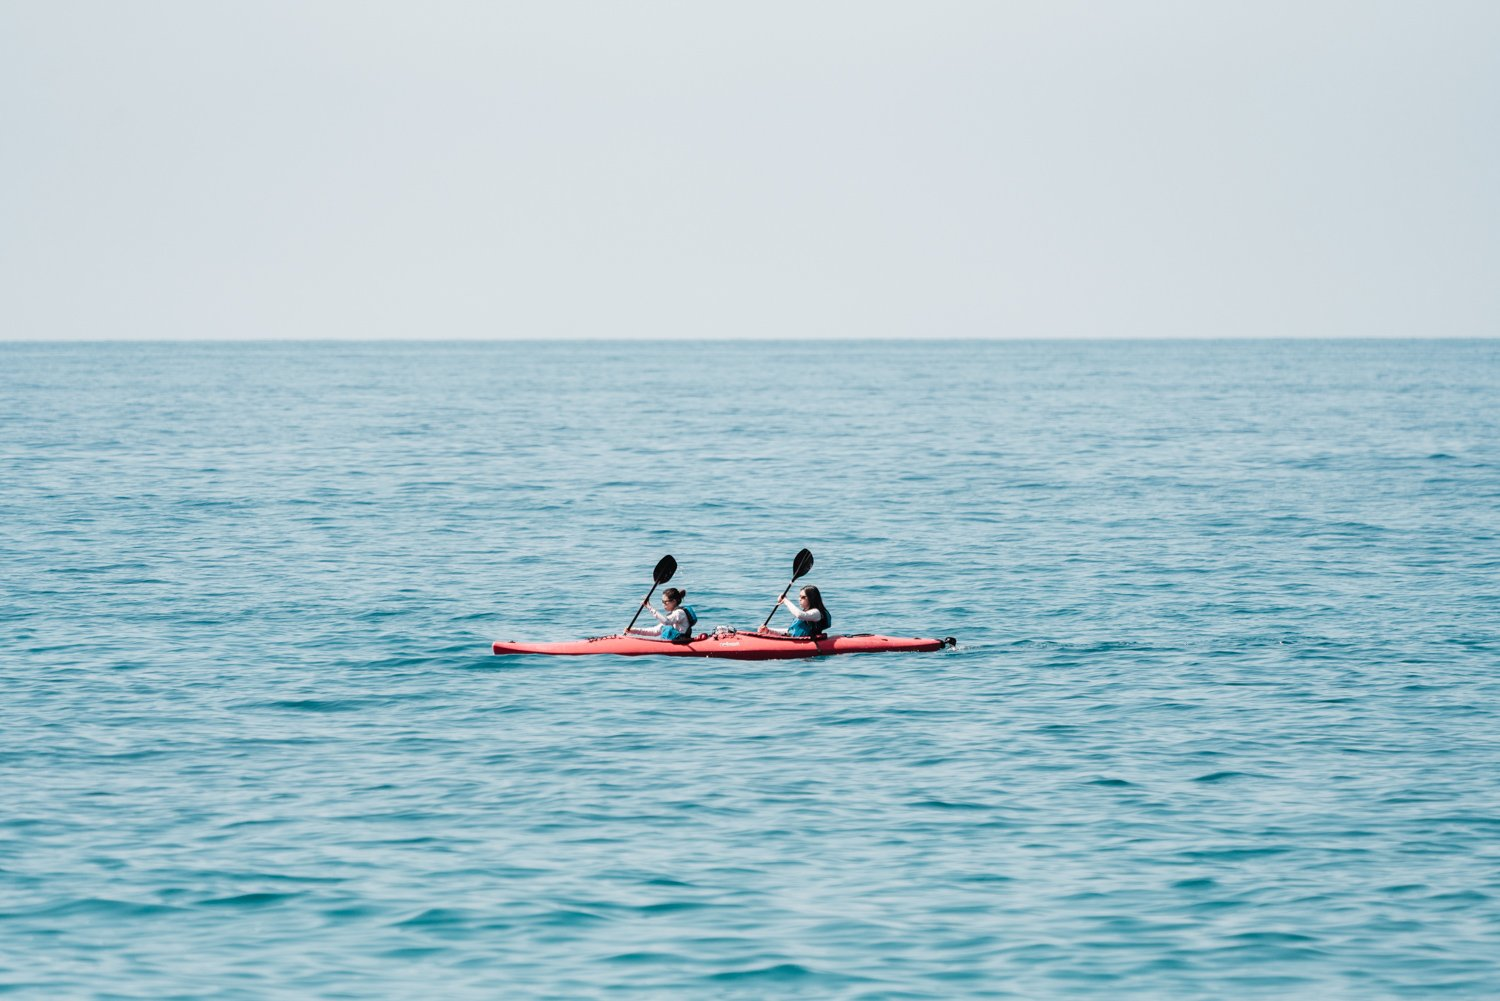 Two women paddling a red kayak in Cinque Terre